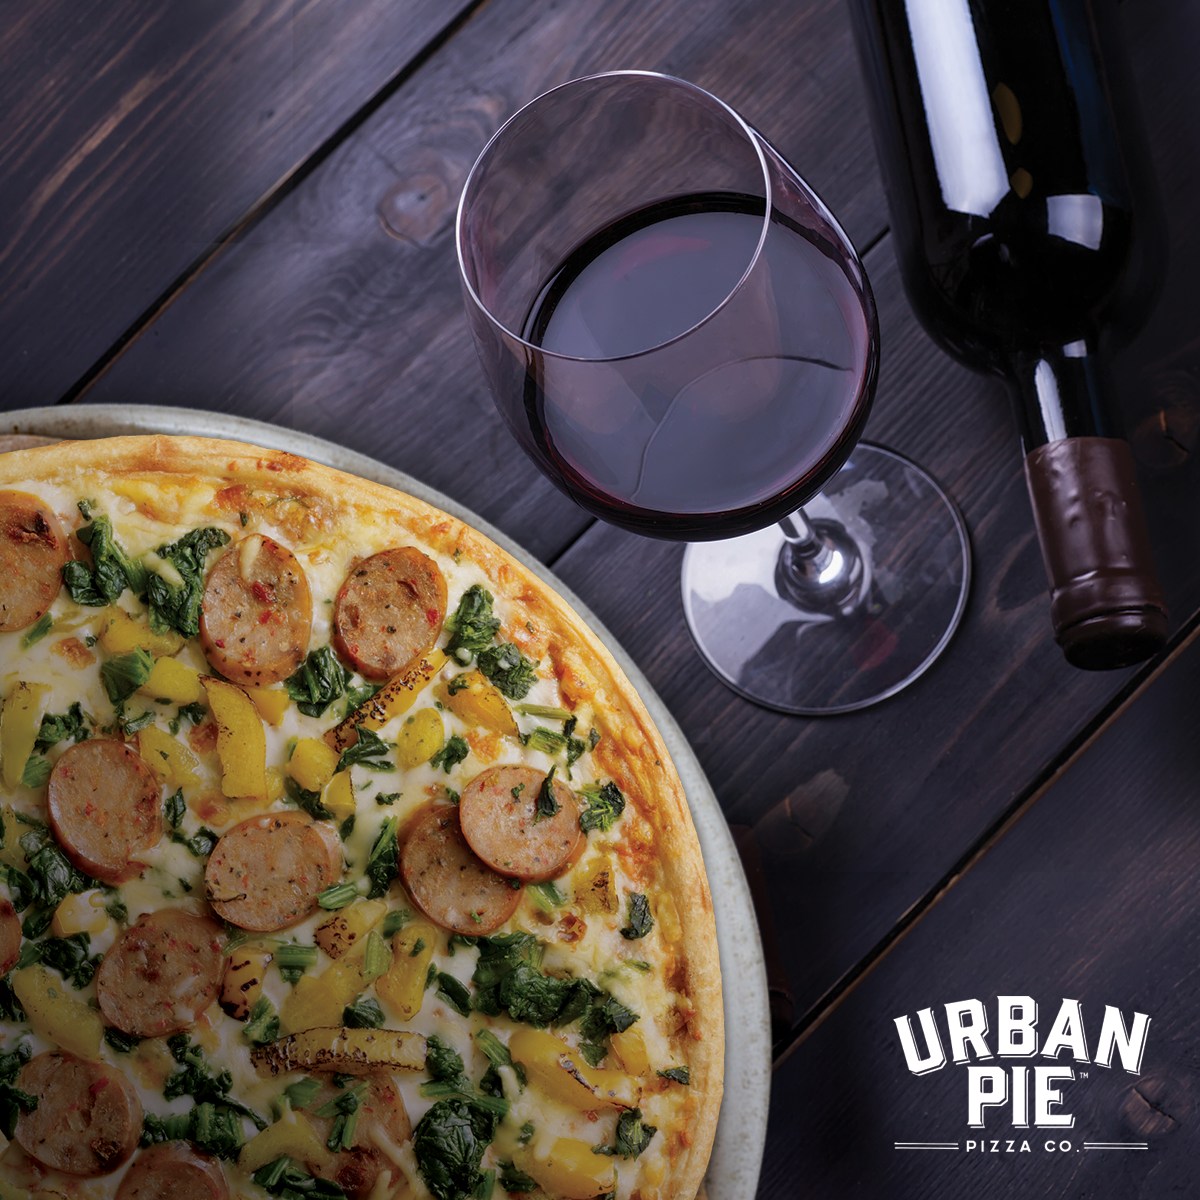 Half off picture sits a cooked Urban Pie pizza topped with chicken sausage, yellow peppers, and cheese. Next to the pizza is a stemmed glass of red wine sitting on a dark wood background with a bottle of wine next to it on its side.